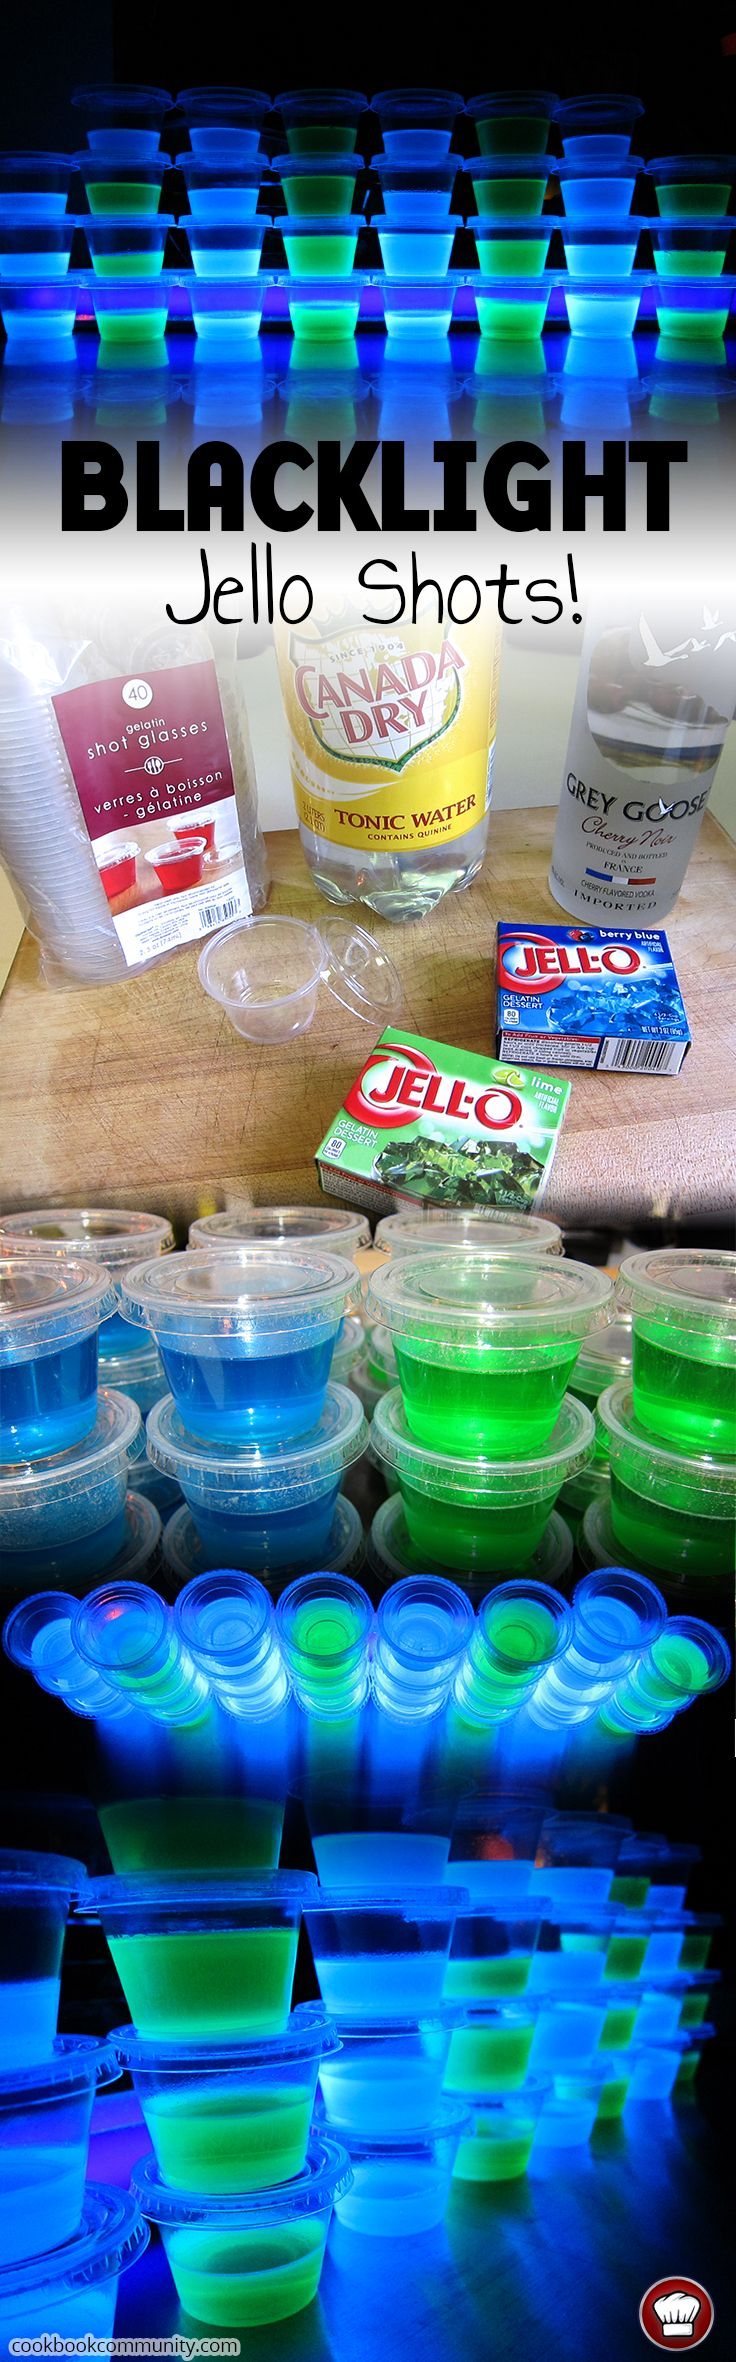 Jello shots with fruit inside - Blacklight Jello Shots Bet You Never Saw Jello Shots Like These These Blacklight Glowing